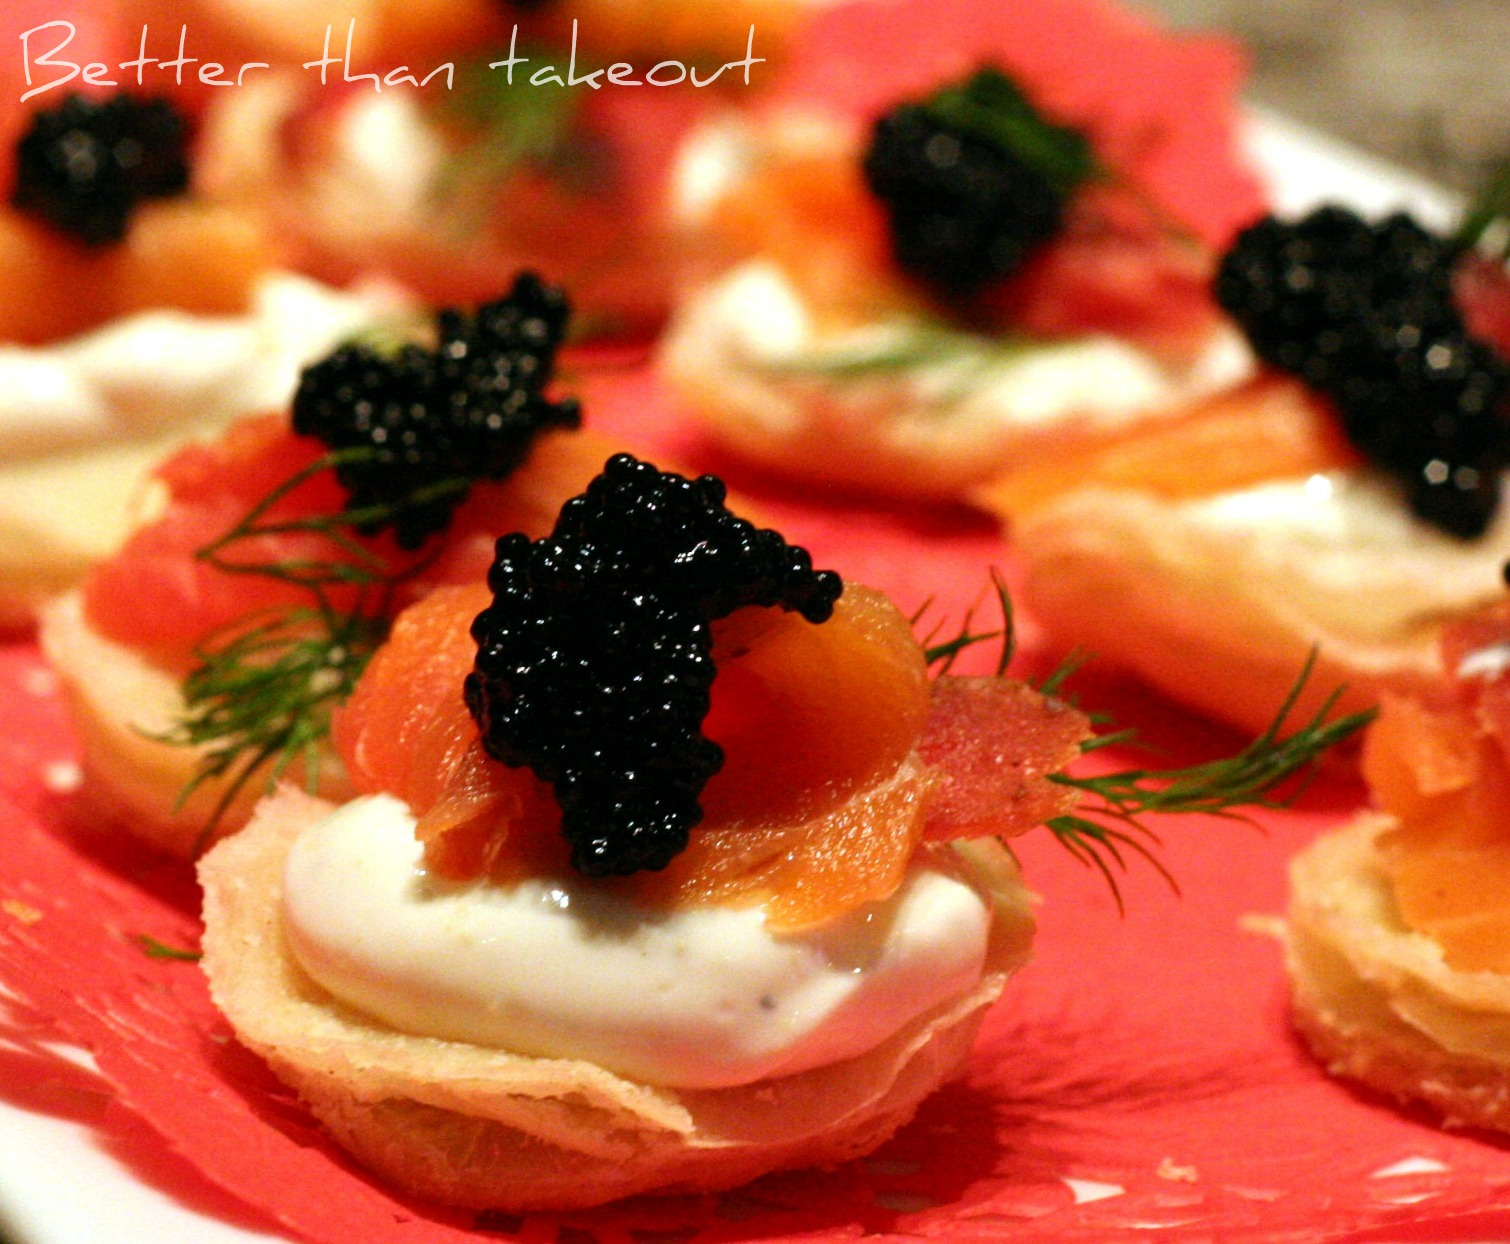 Better than takeout: Smoked Salmon Blini with Caviar & Dill